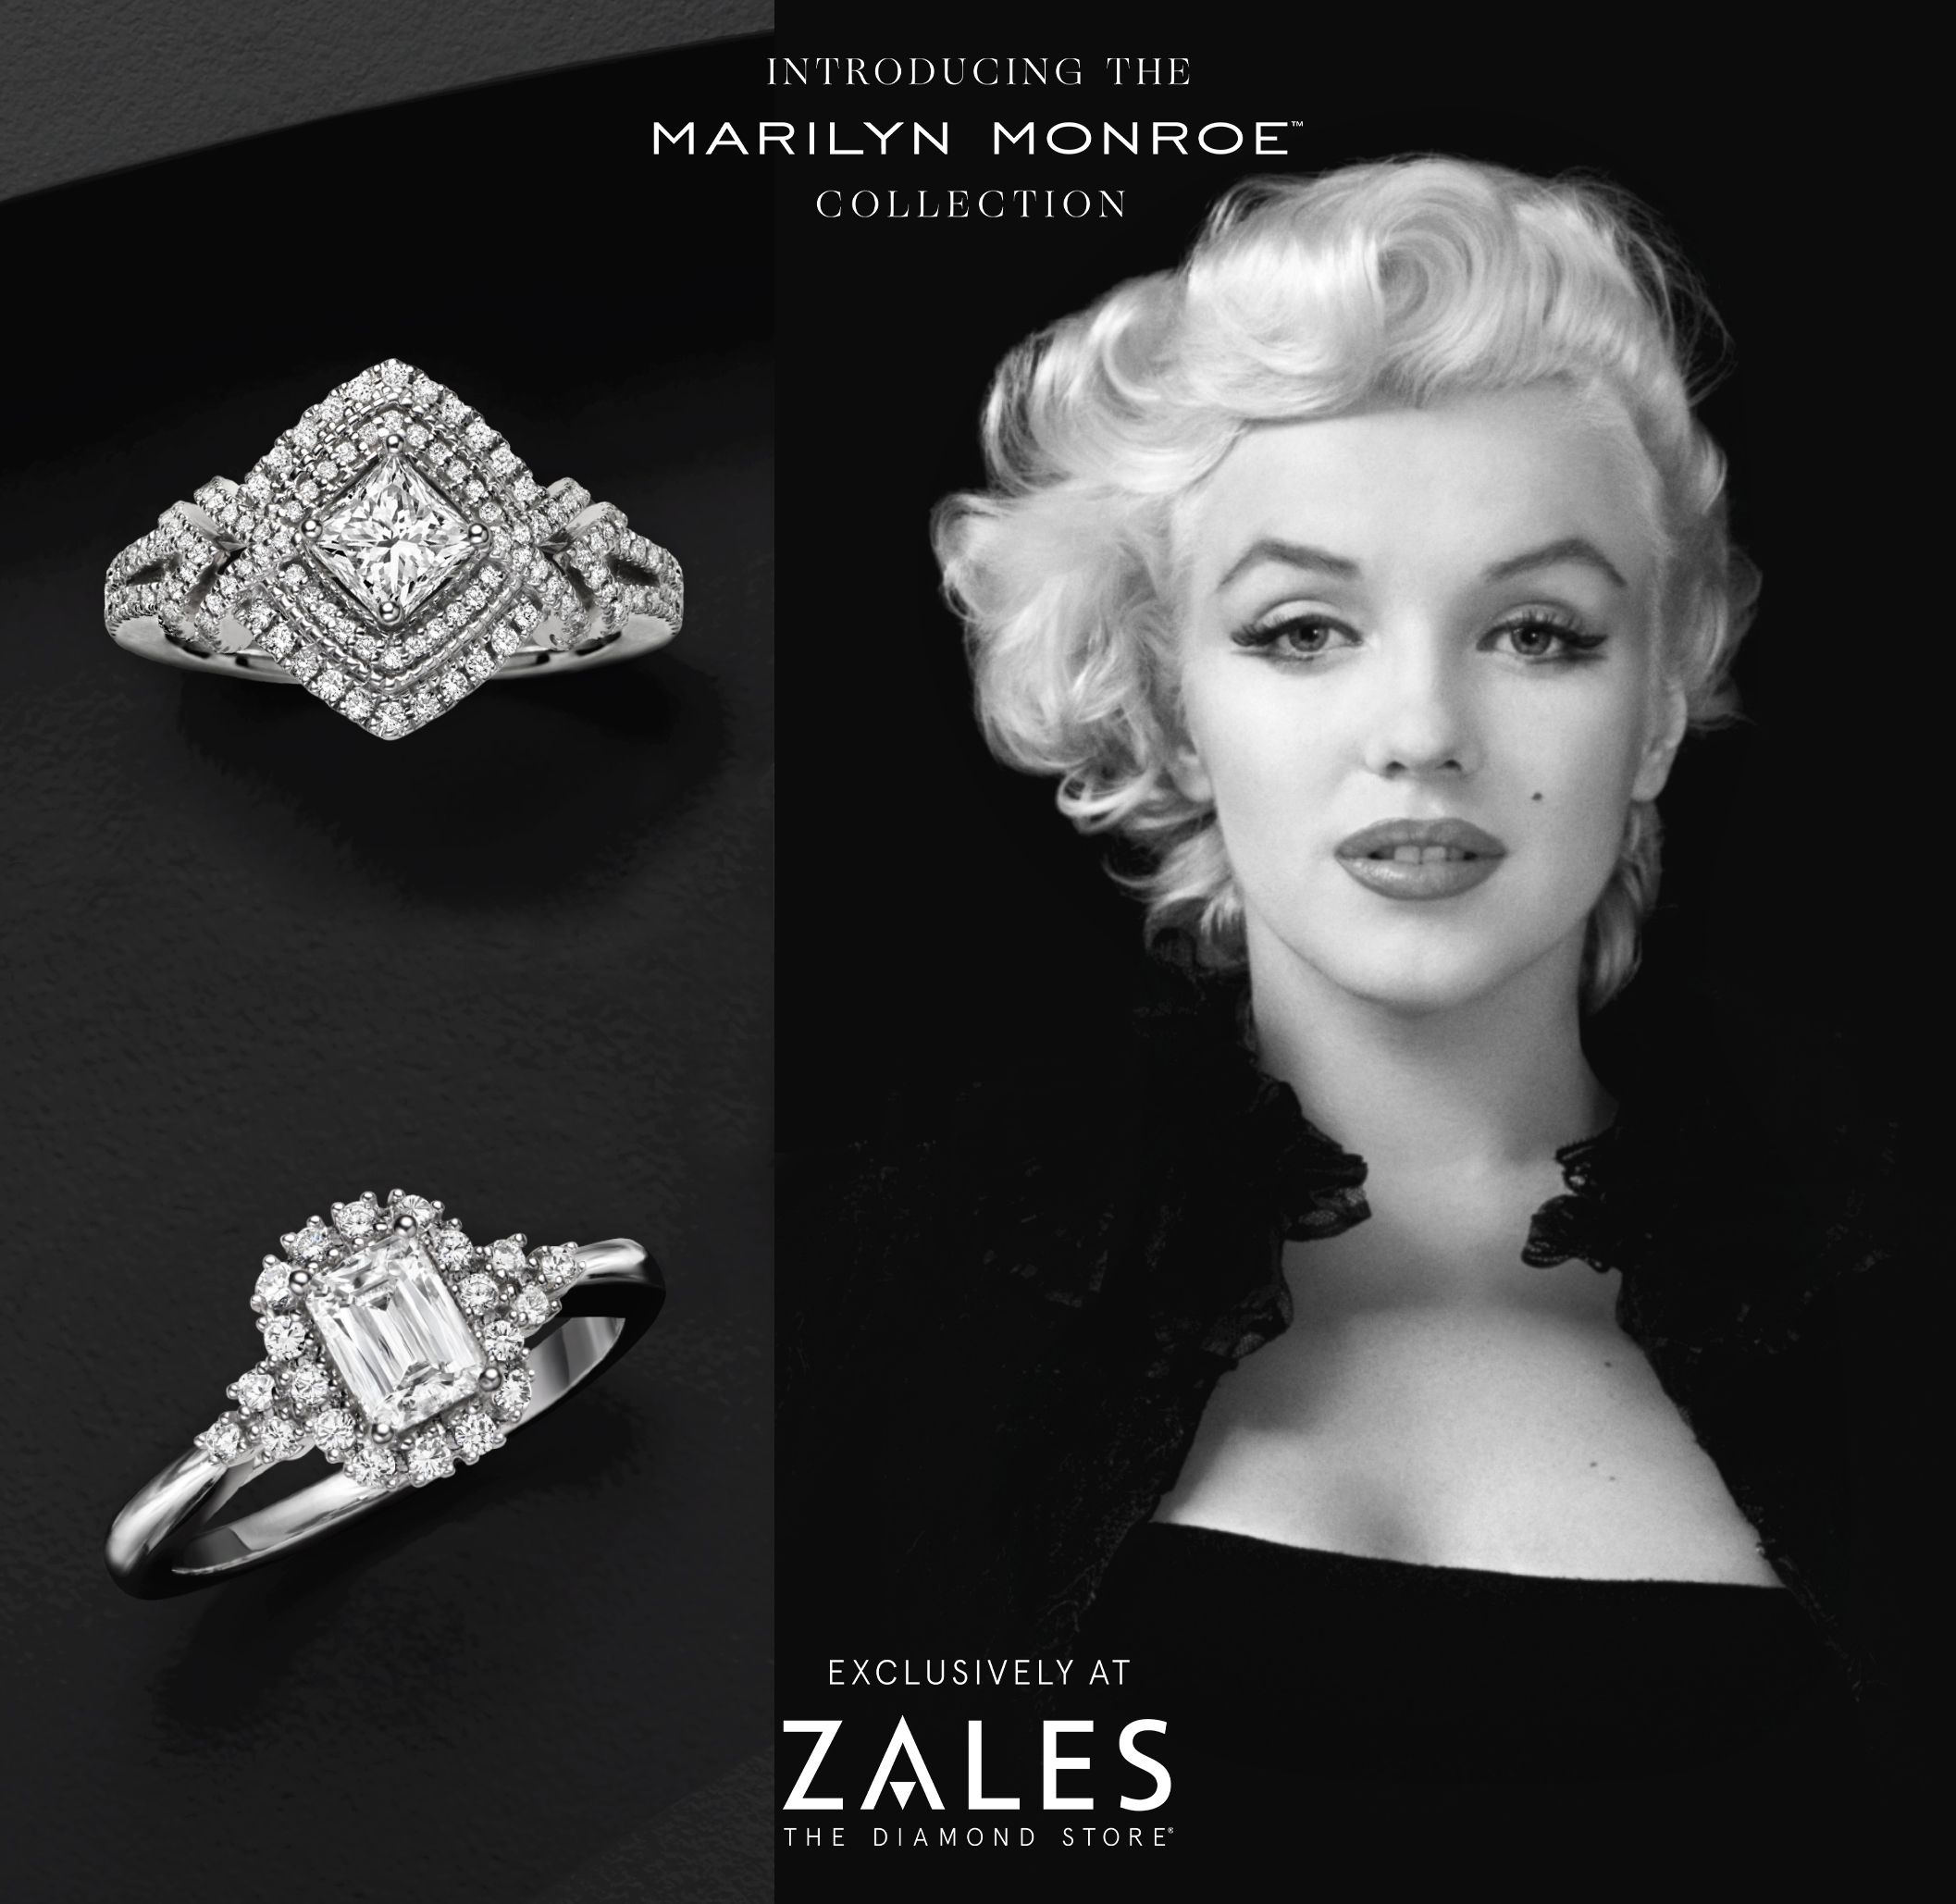 15+ Marilyn monroe collection at zales jewelry viral